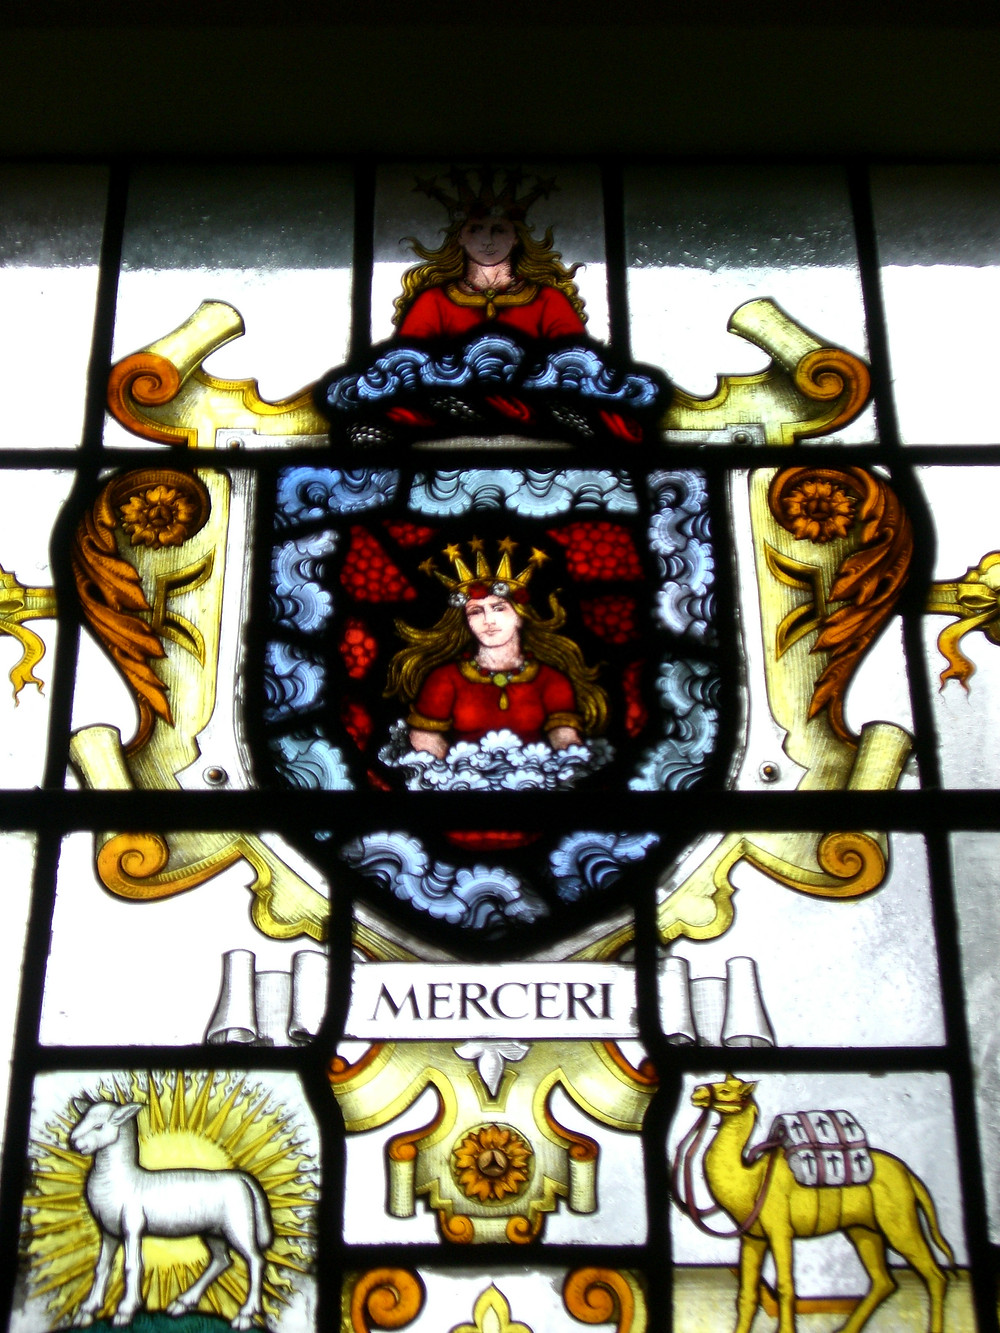 Stained_glass_-_Worshipful_Company_of_Mercers_crest.jpg